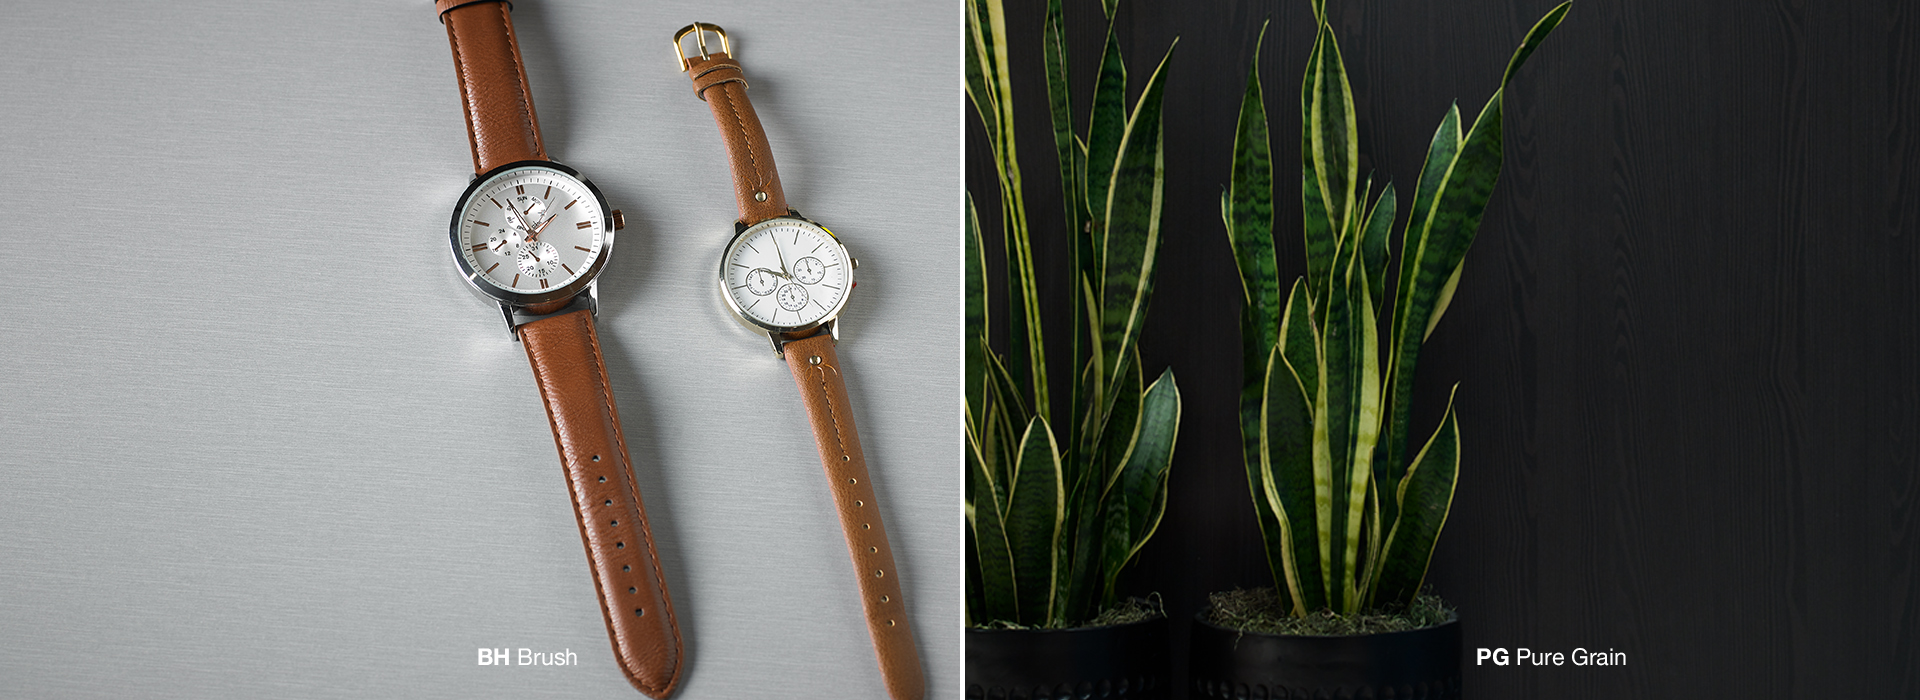 Watch and plant